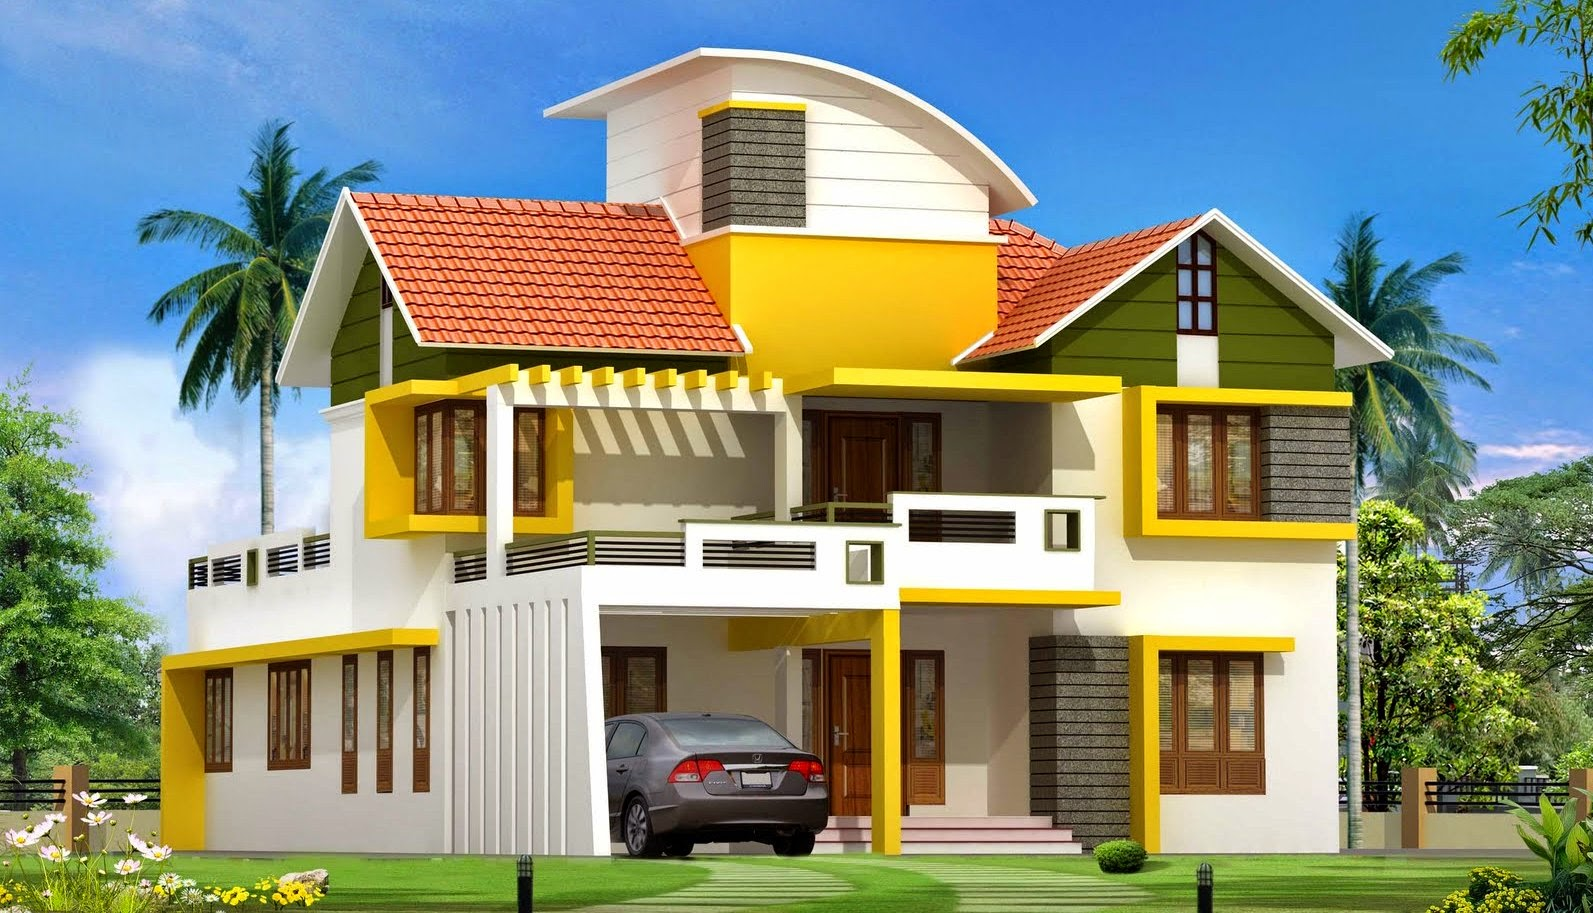 kerala home design new modern houses - Images Of New Home Designs